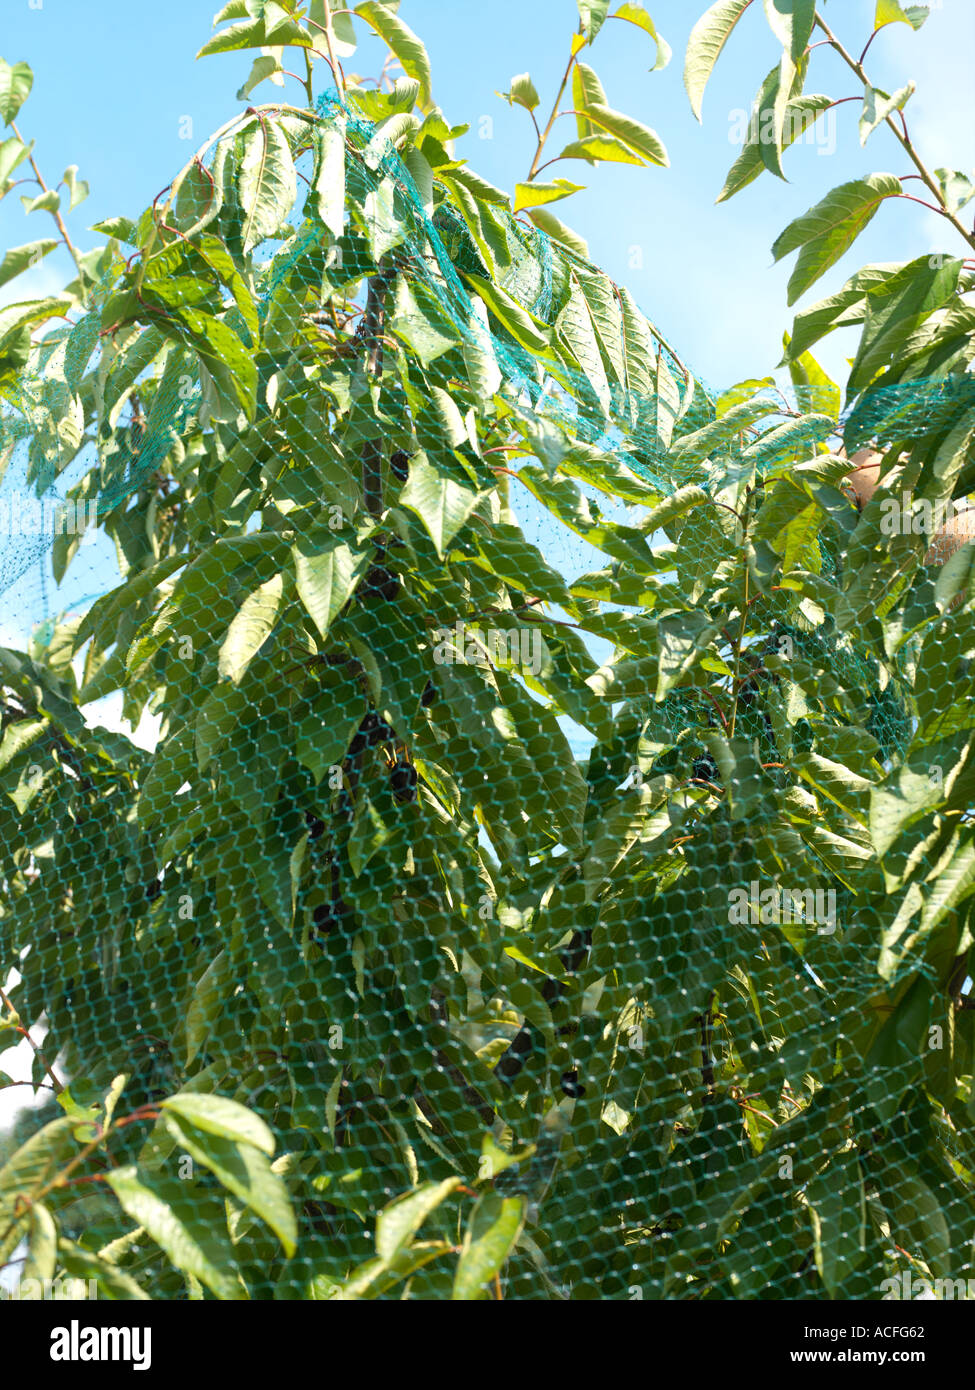 Cherry Tree with Netting to Keep Birds from Eating Cherries - Stock Image